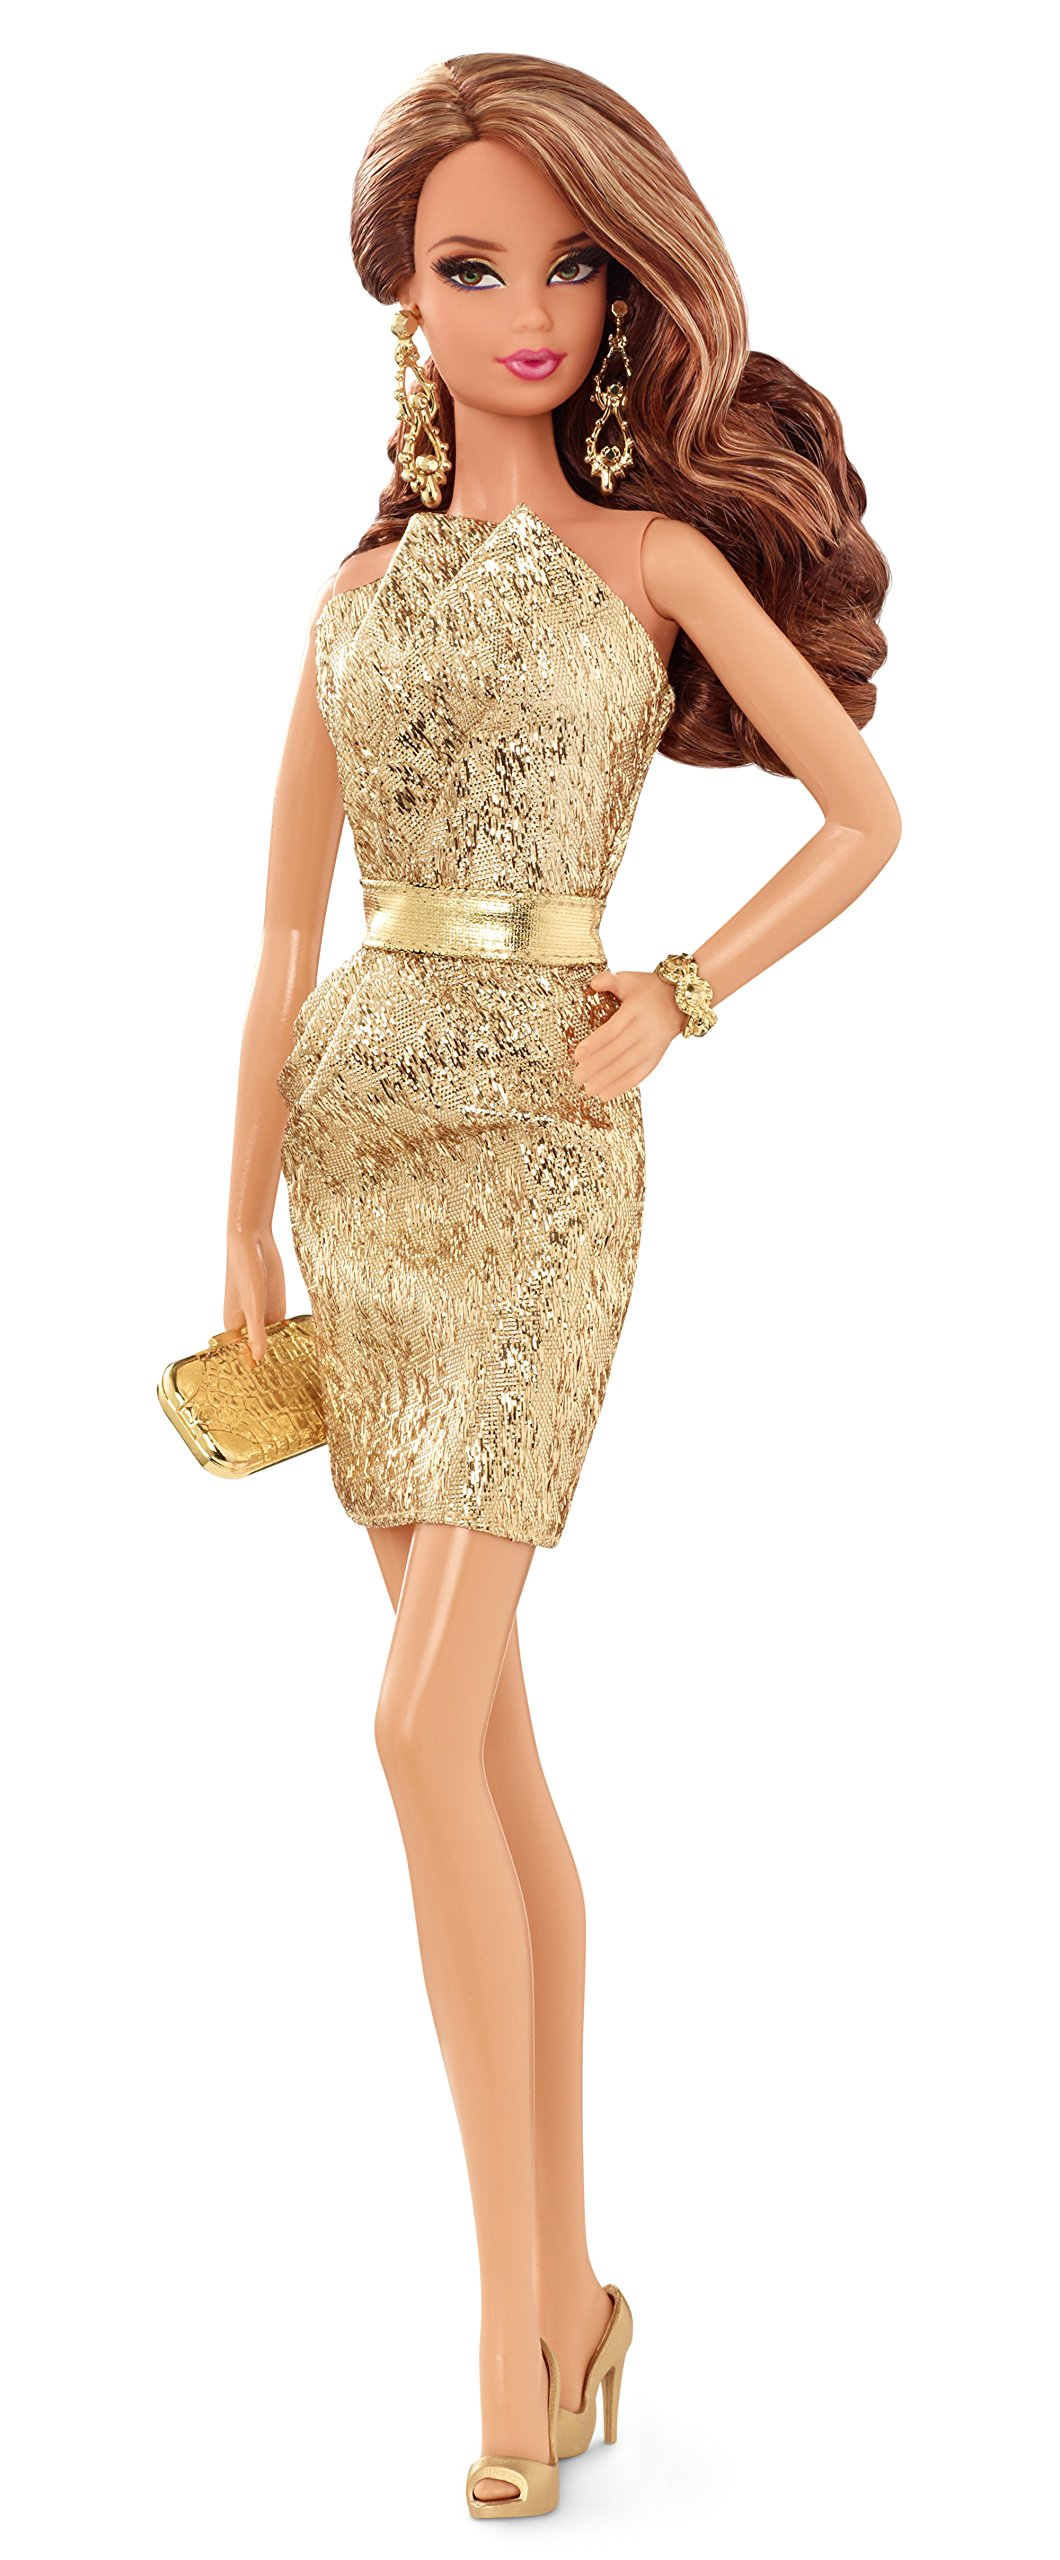 Barbie The Look: Gold Dress Doll